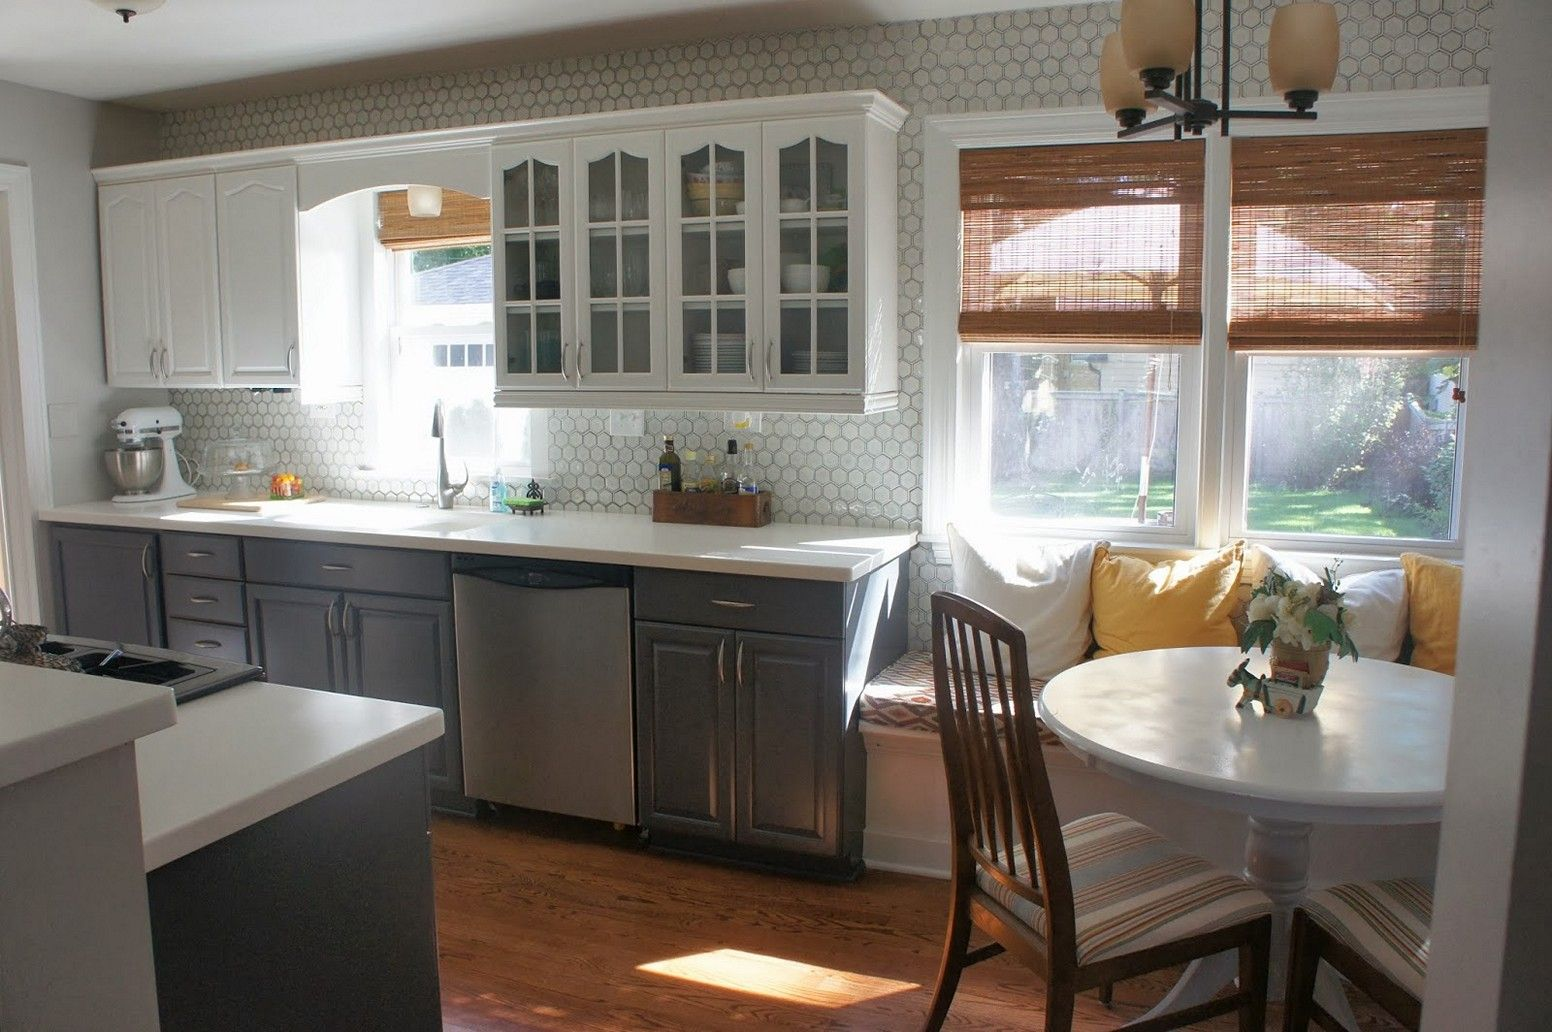 Grey Painted Kitchen Cabinets gray painted kitchen cabinets | kitchen | pinterest | cabinets